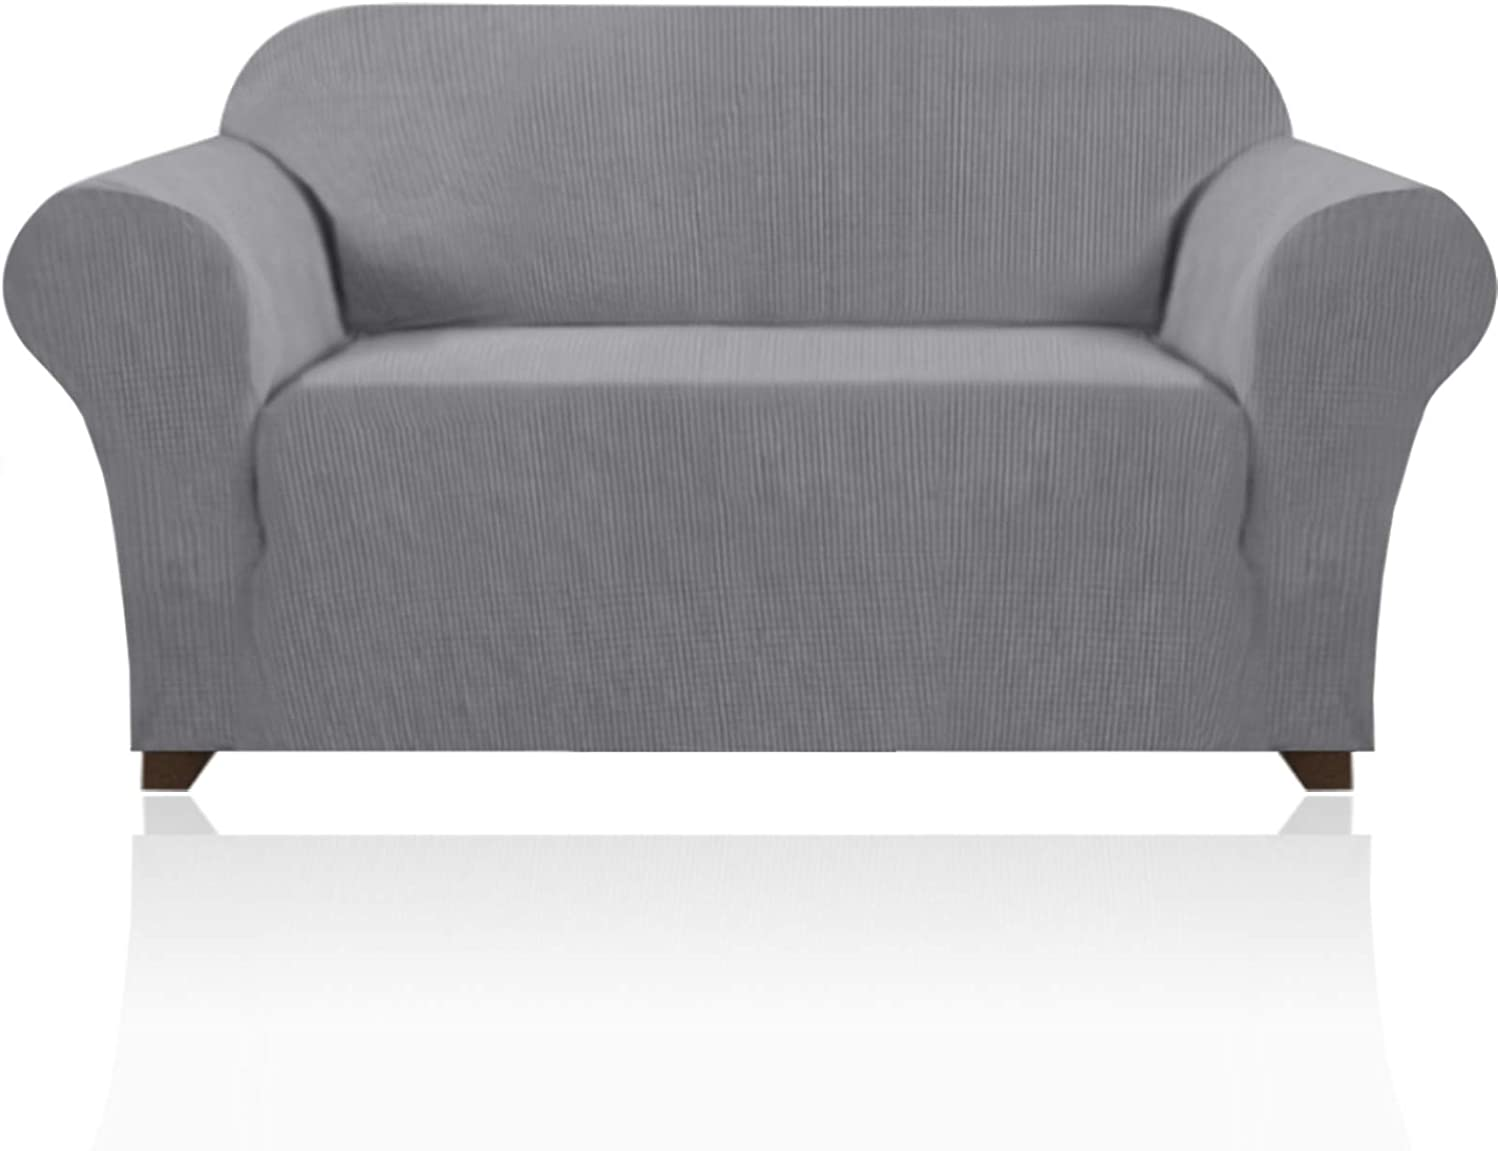 Stretch Sofa Slipcover 1 Piece Sofa Cover for 2 Cushion Couch Furniture Protector/Cover Couch with Elastic Bottom Soft and Durable Sofa Cover Pet Protector (Loveseat, Dove)